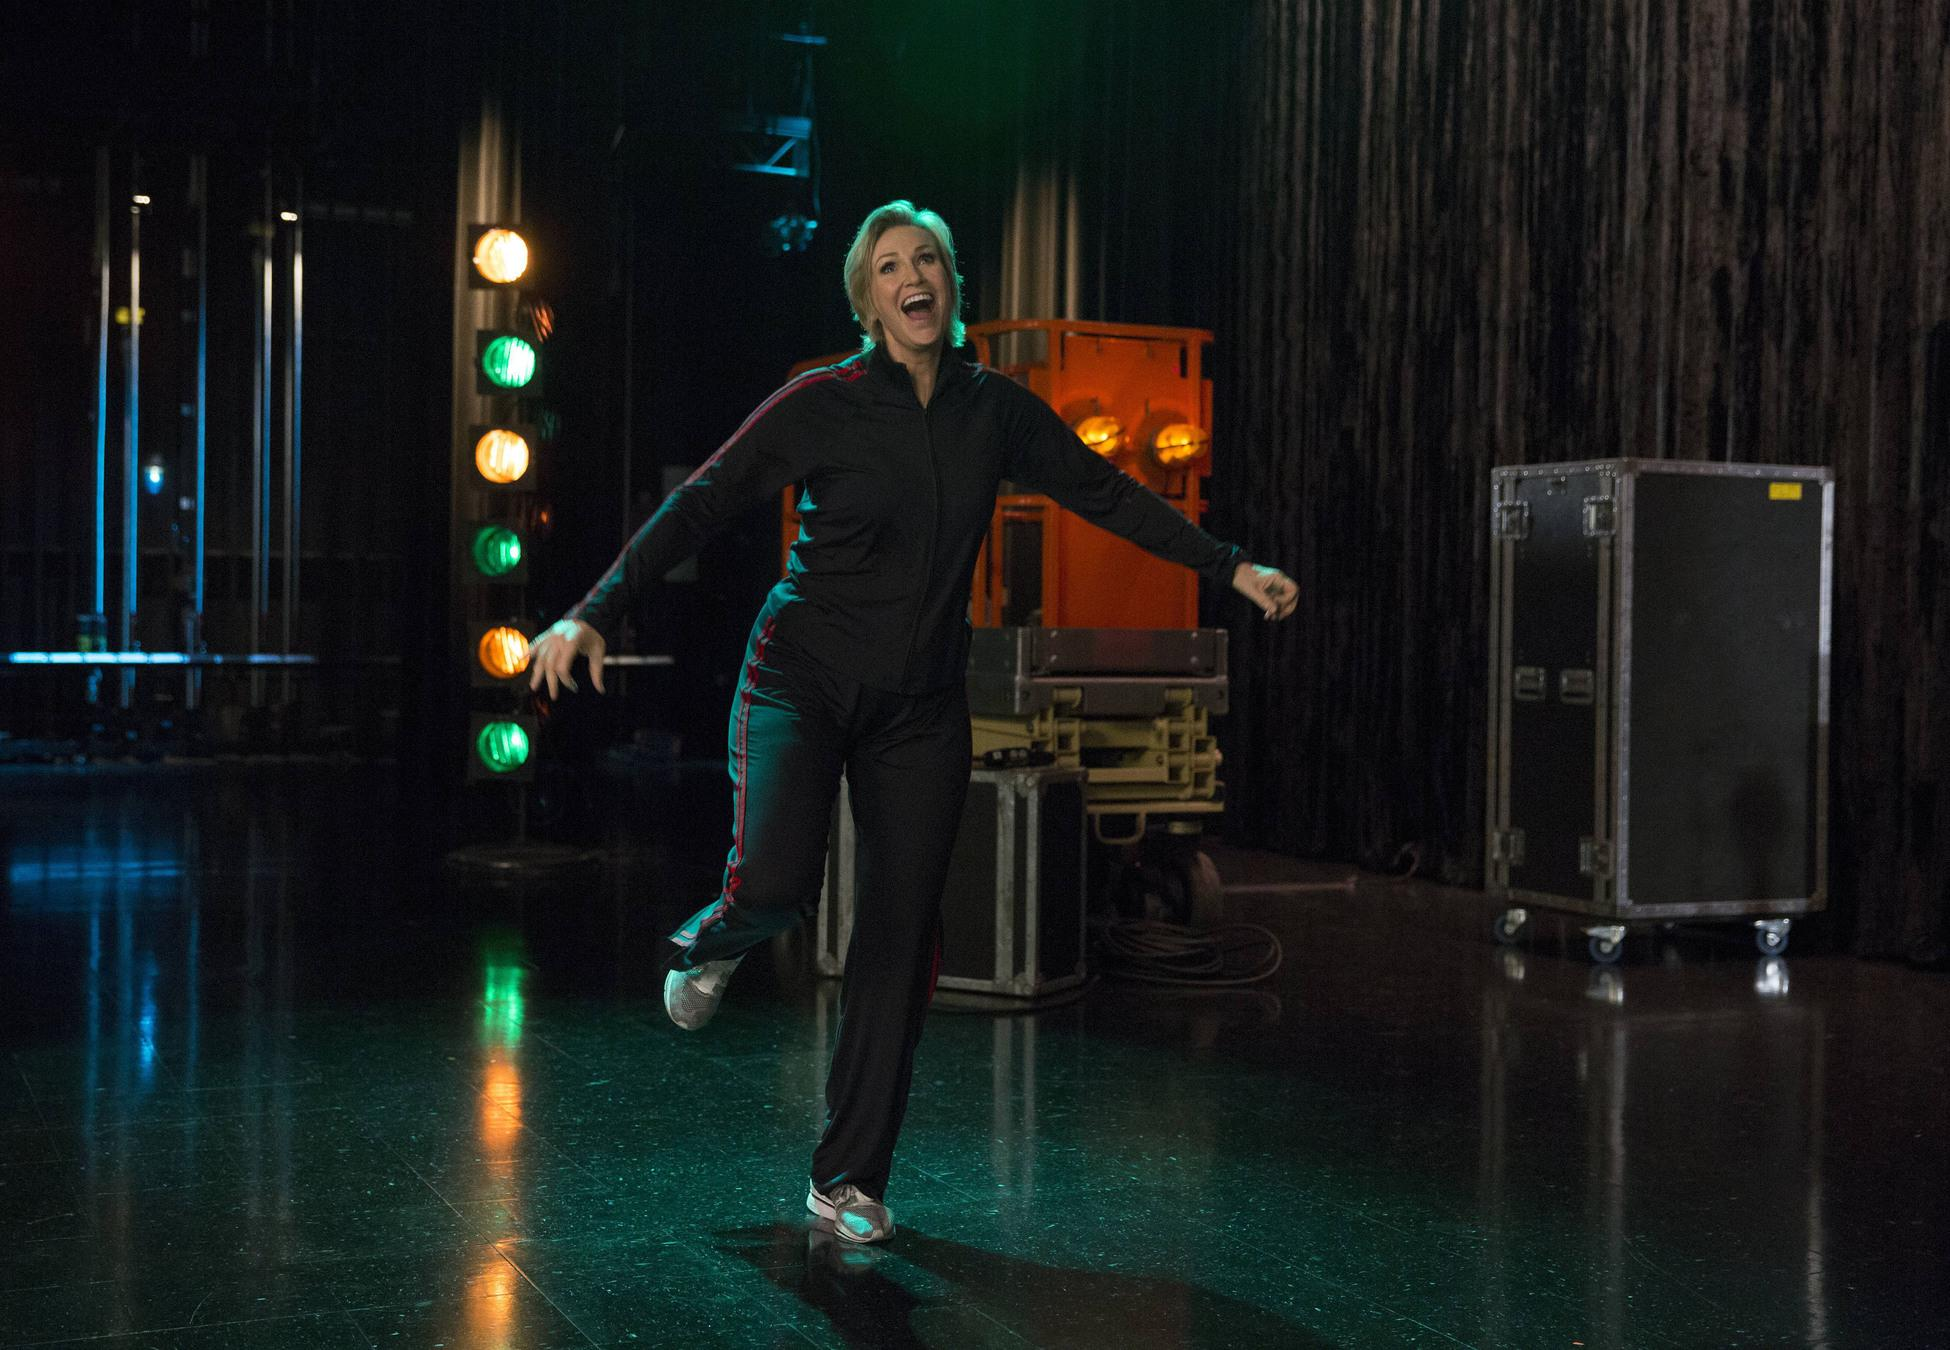 Sue could not have picked a better song to perform. What was your favorite moment from last night? #glee http://t.co/1N6g38ySwH